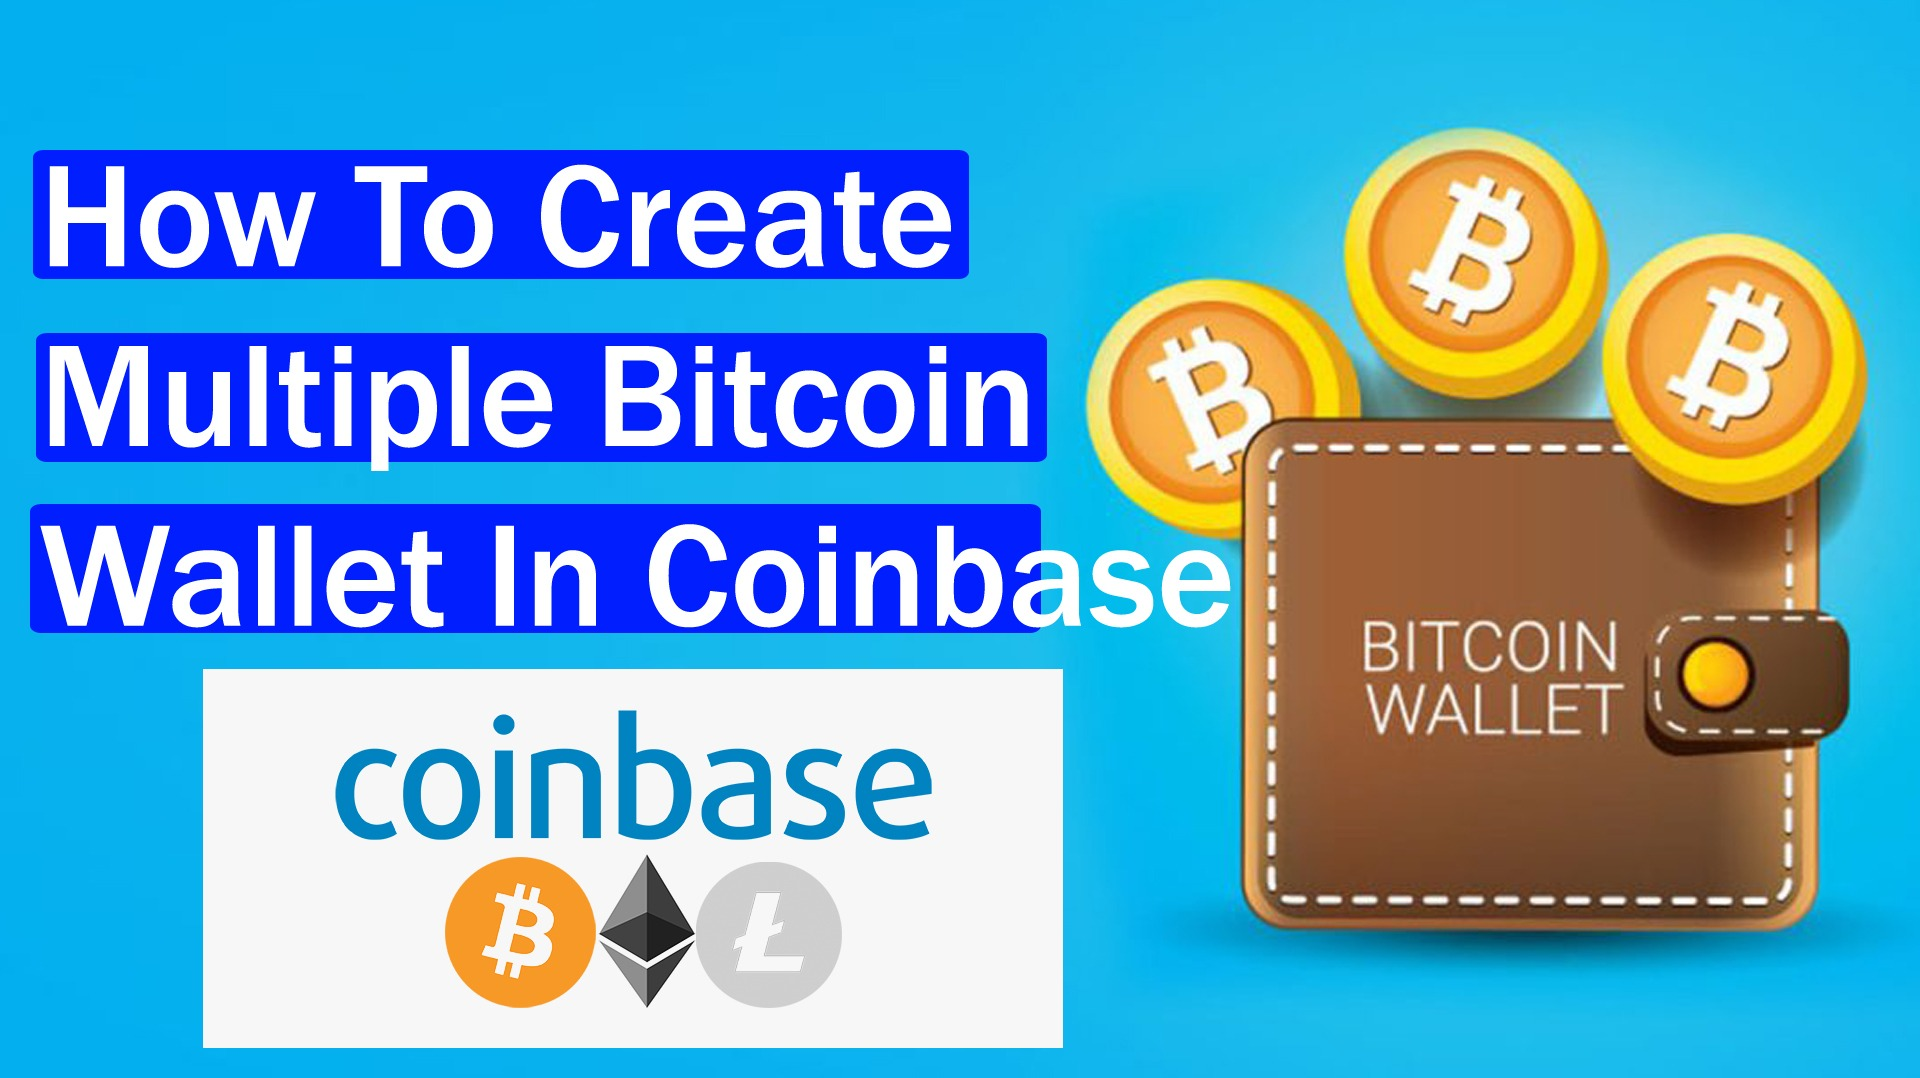 How To Create Multiple Bitcoin Wallet In Coinbase